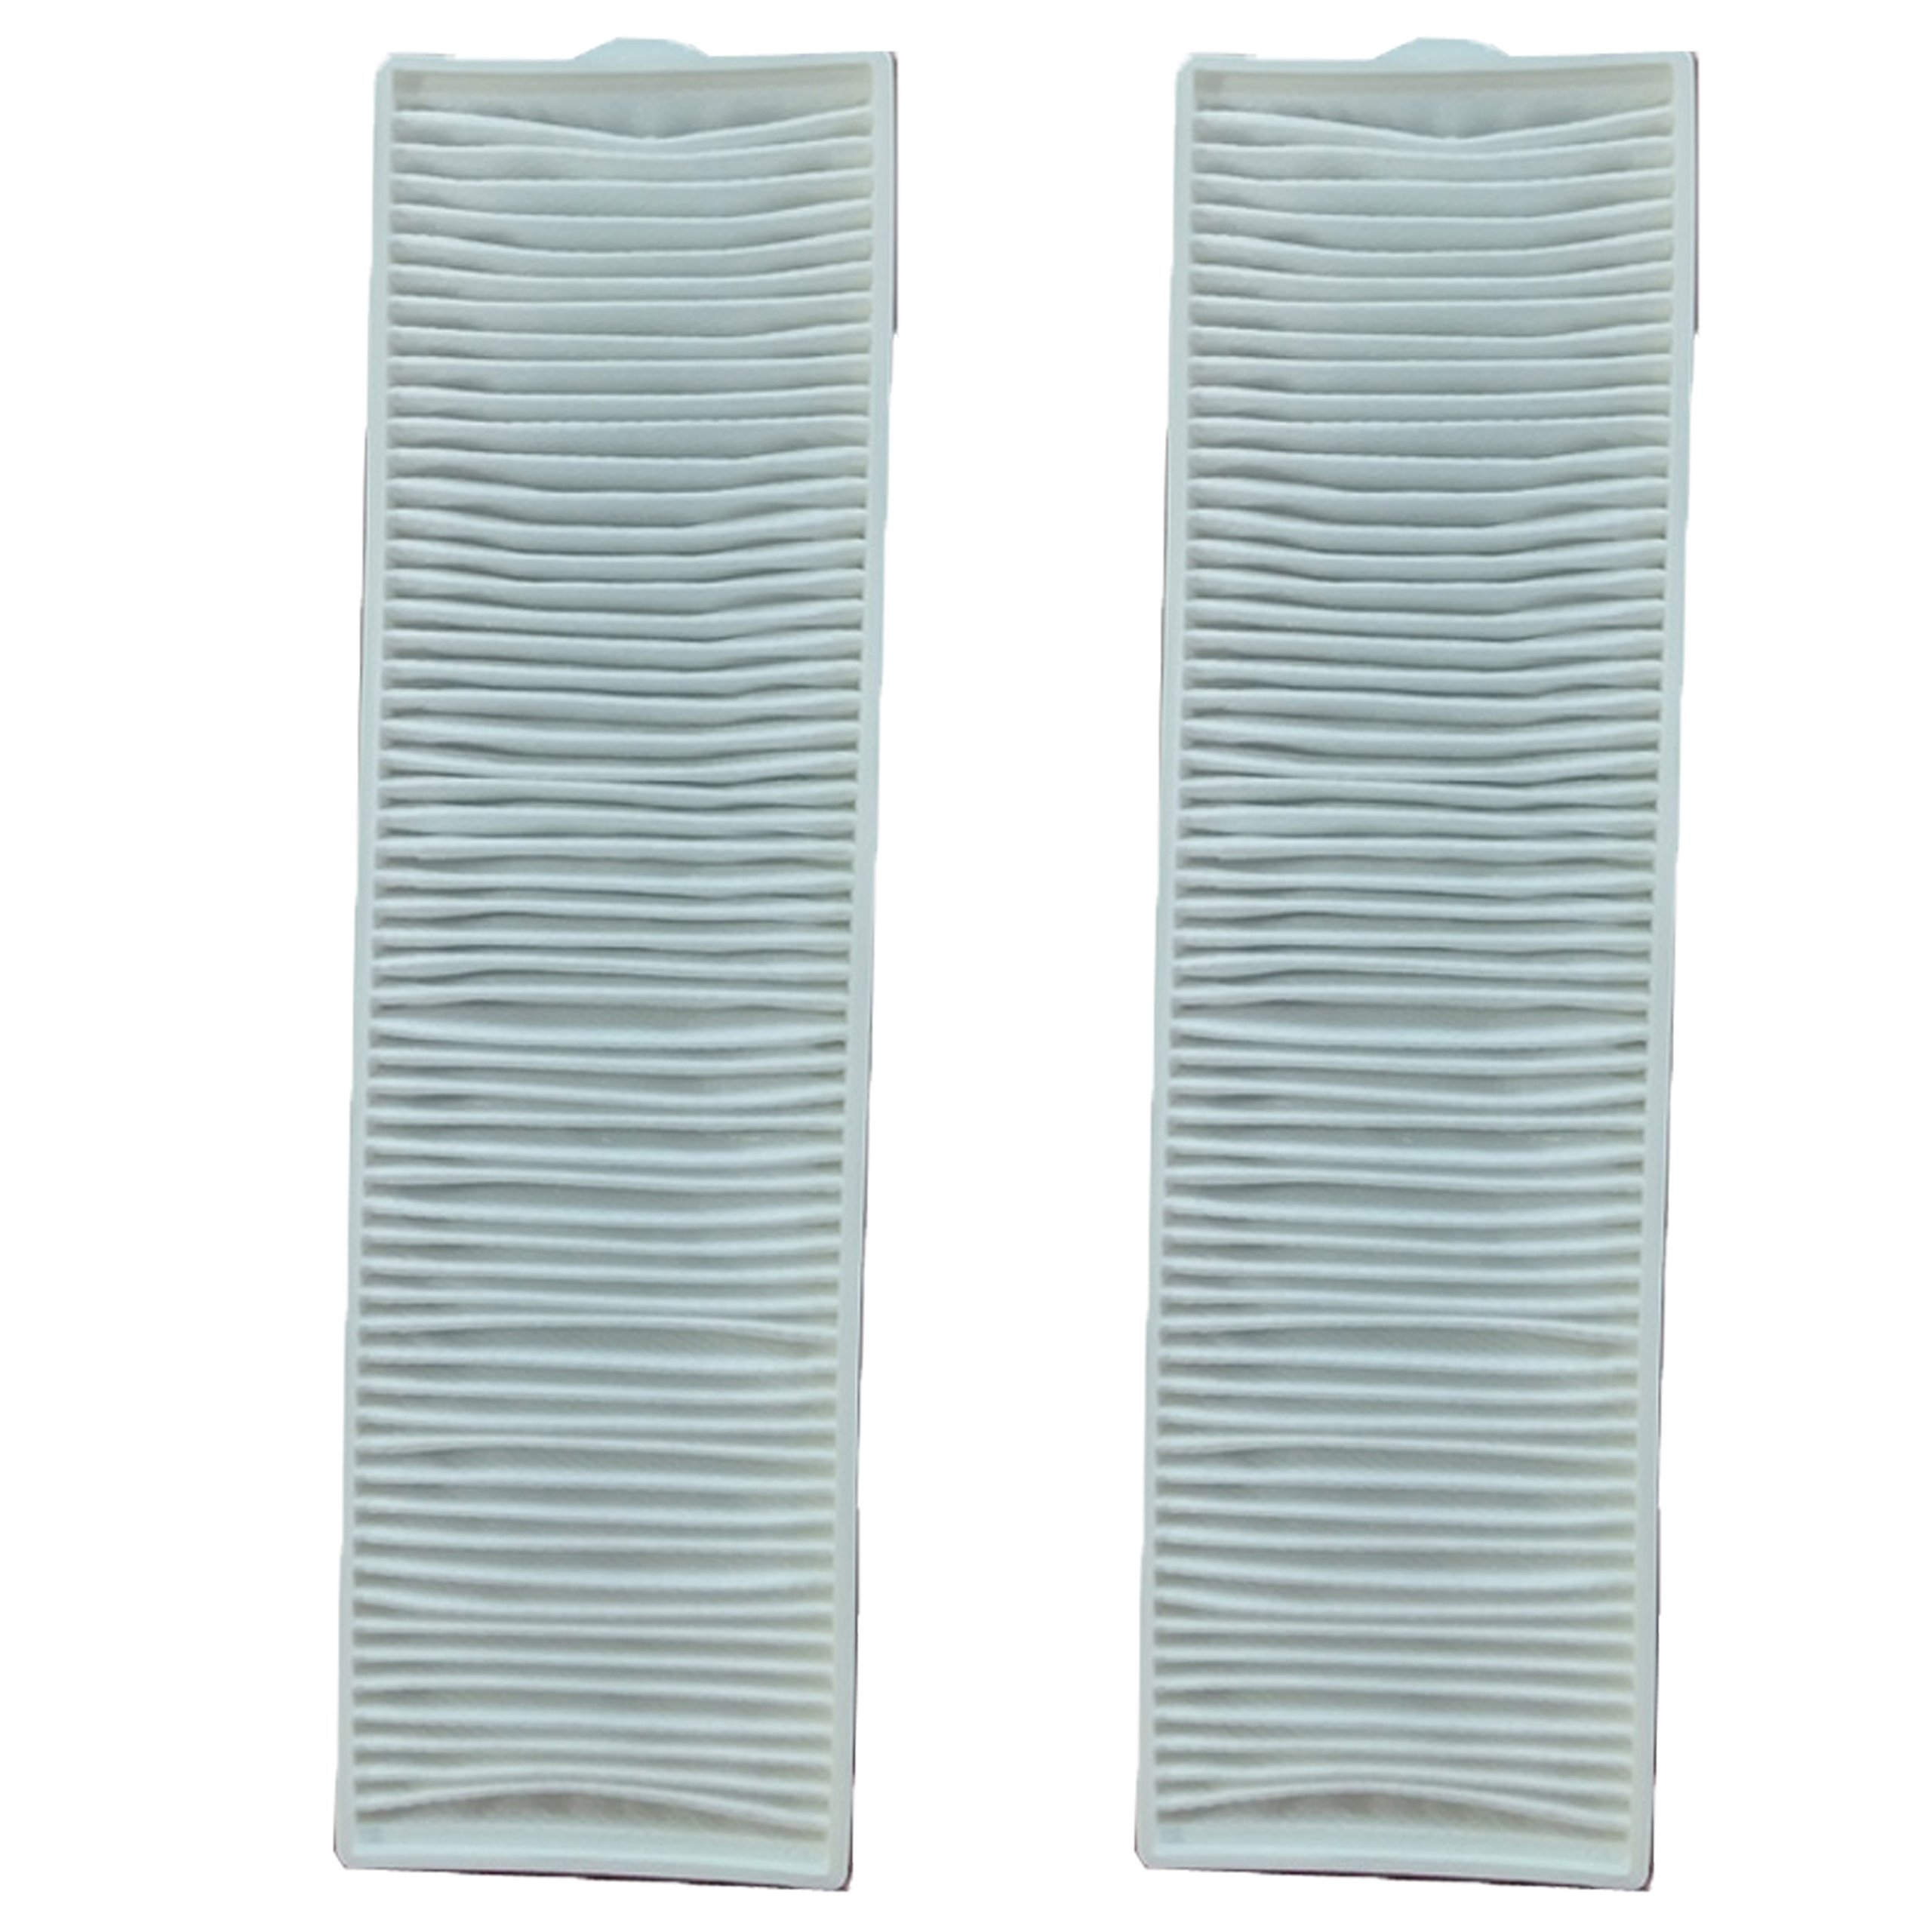 Bissell Style 8, 14 Pleated Post Motor Filter, 3910 Series